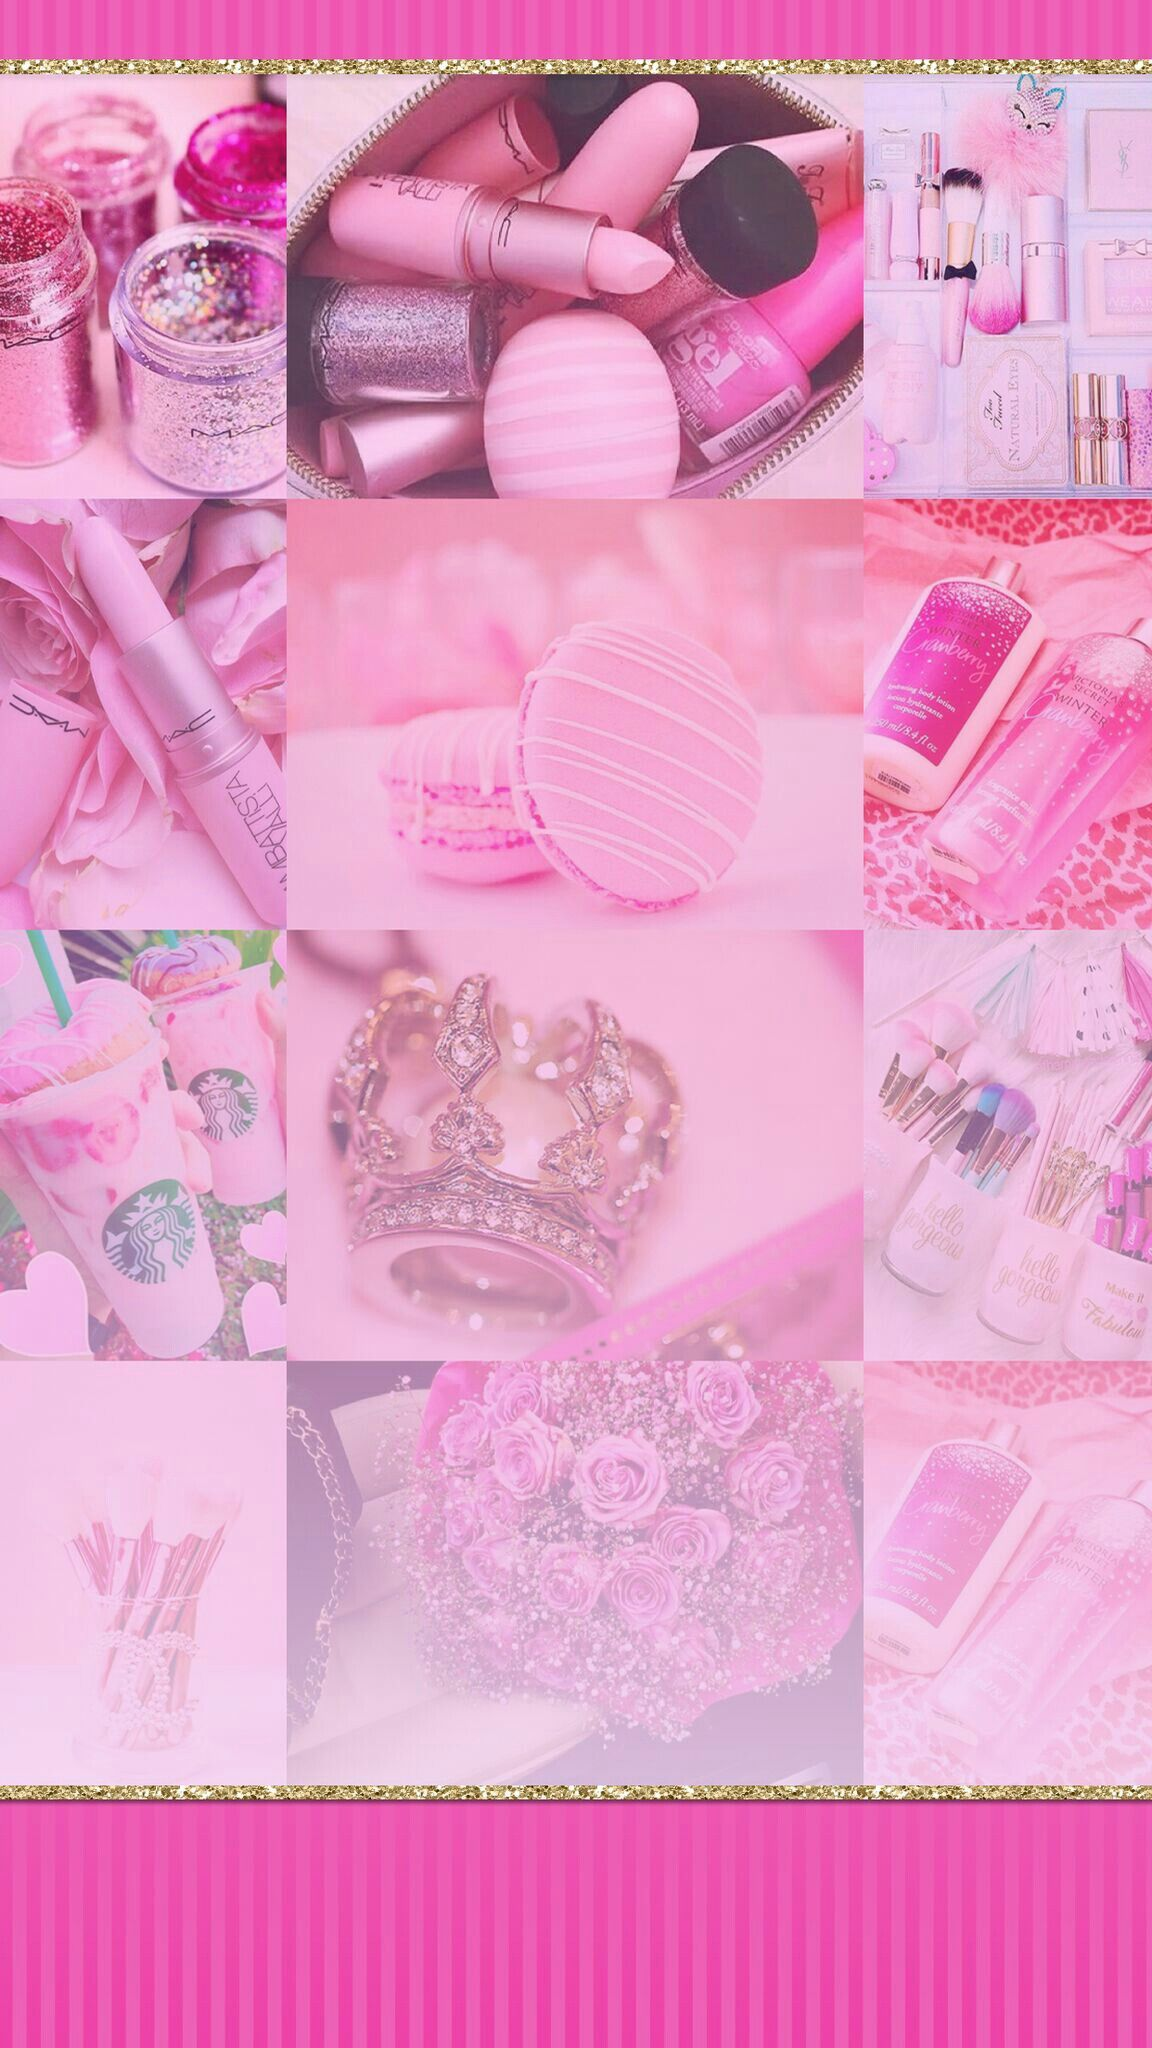 Collage tumblr | Pink aesthetic